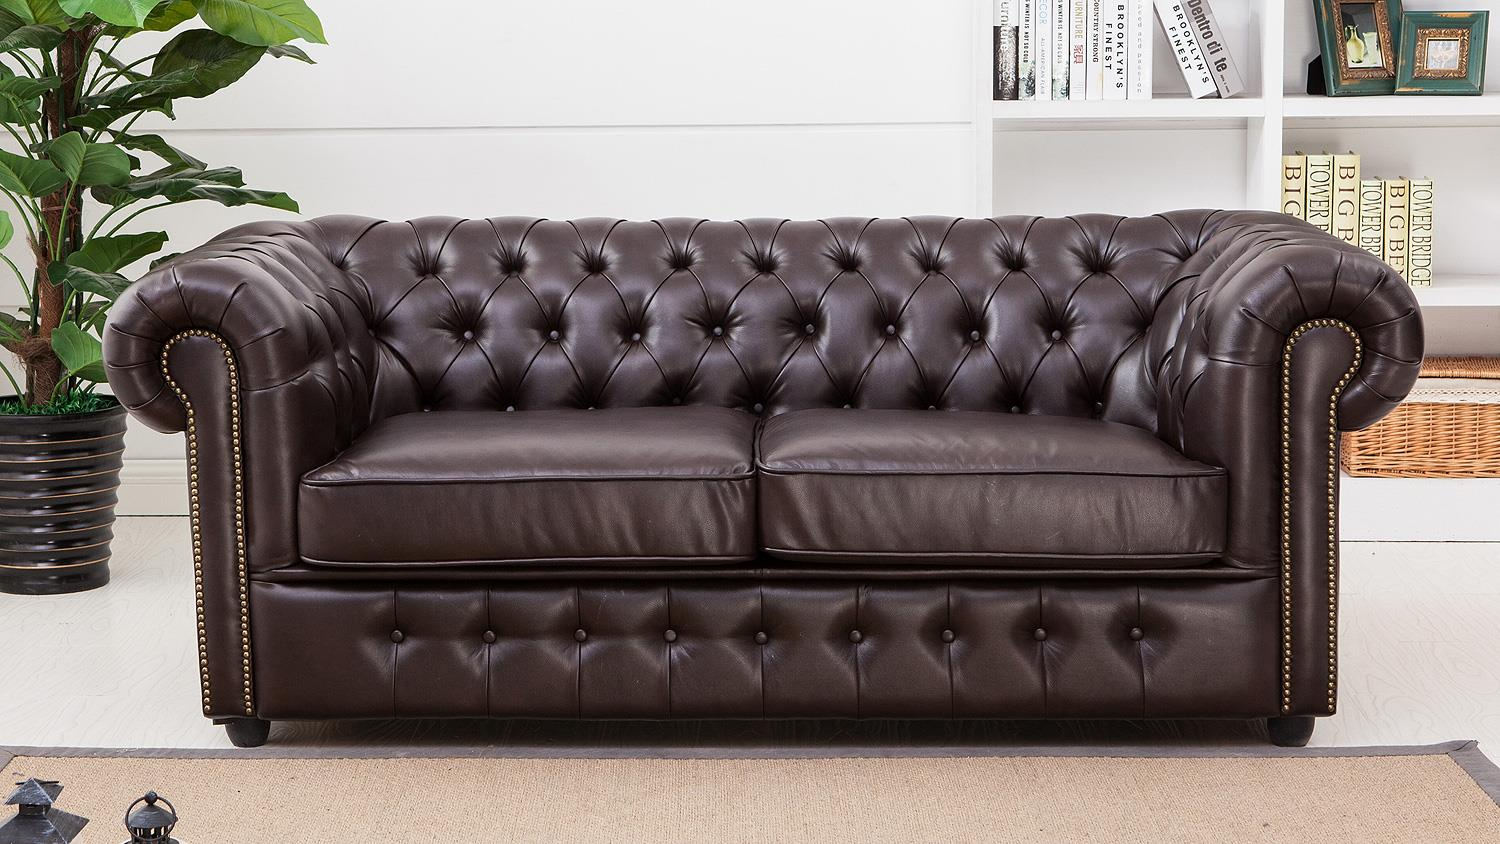 sofa chesterfield 3 sitzer antik dunkelbraun gl nzend mit steppung. Black Bedroom Furniture Sets. Home Design Ideas